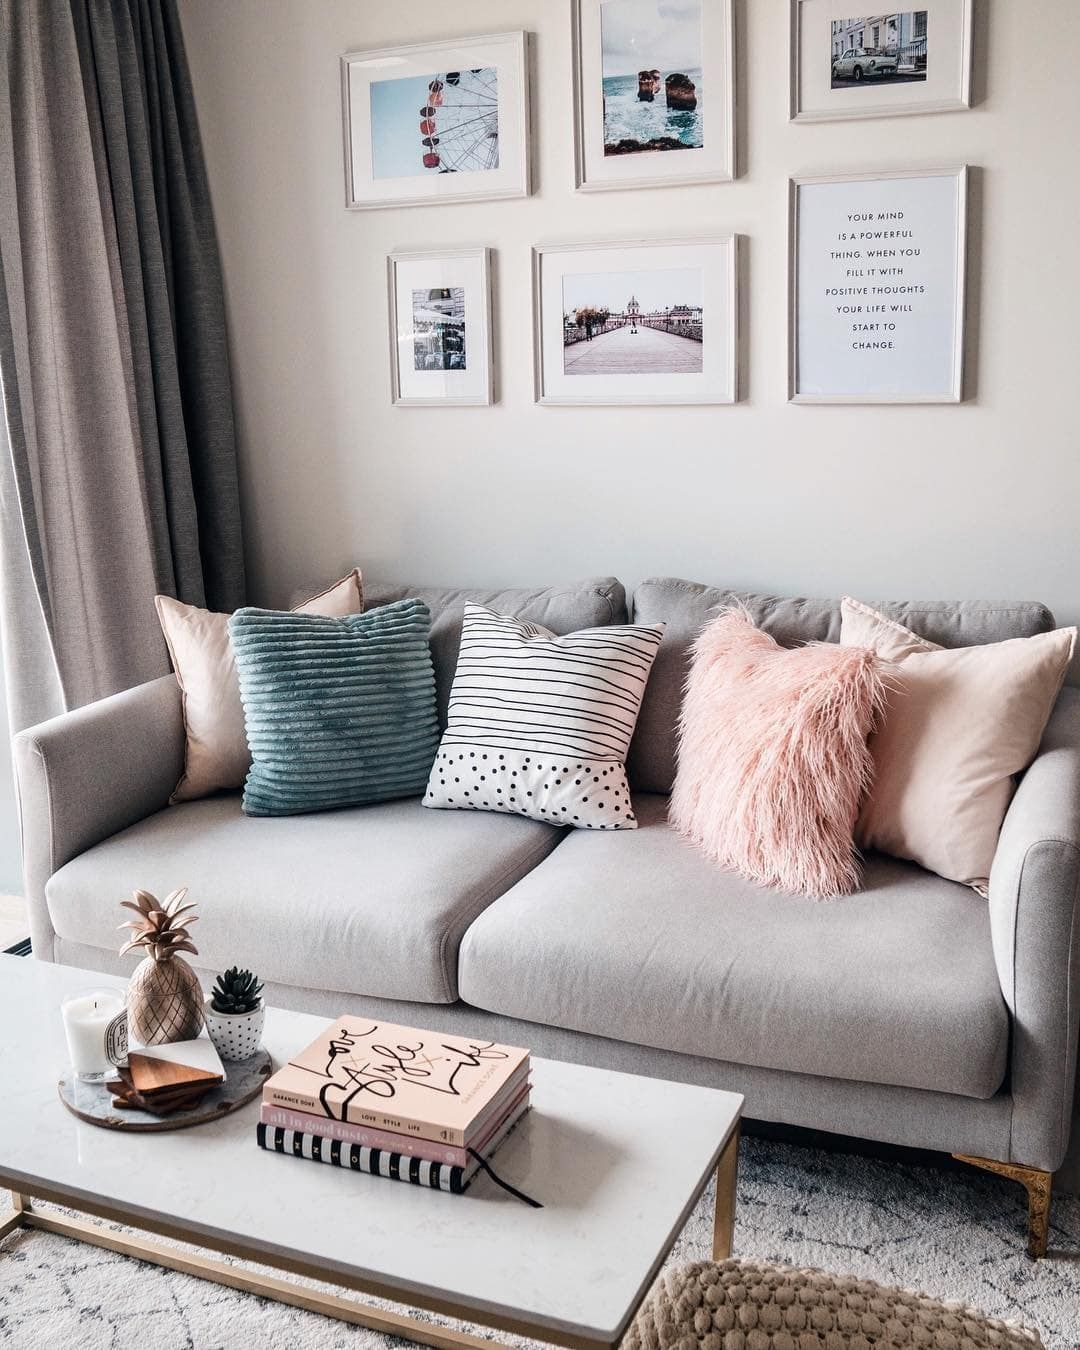 15 Teal And Grey Living Room Ideas in 2021   Living room decor gray, Living room grey, Teal ...